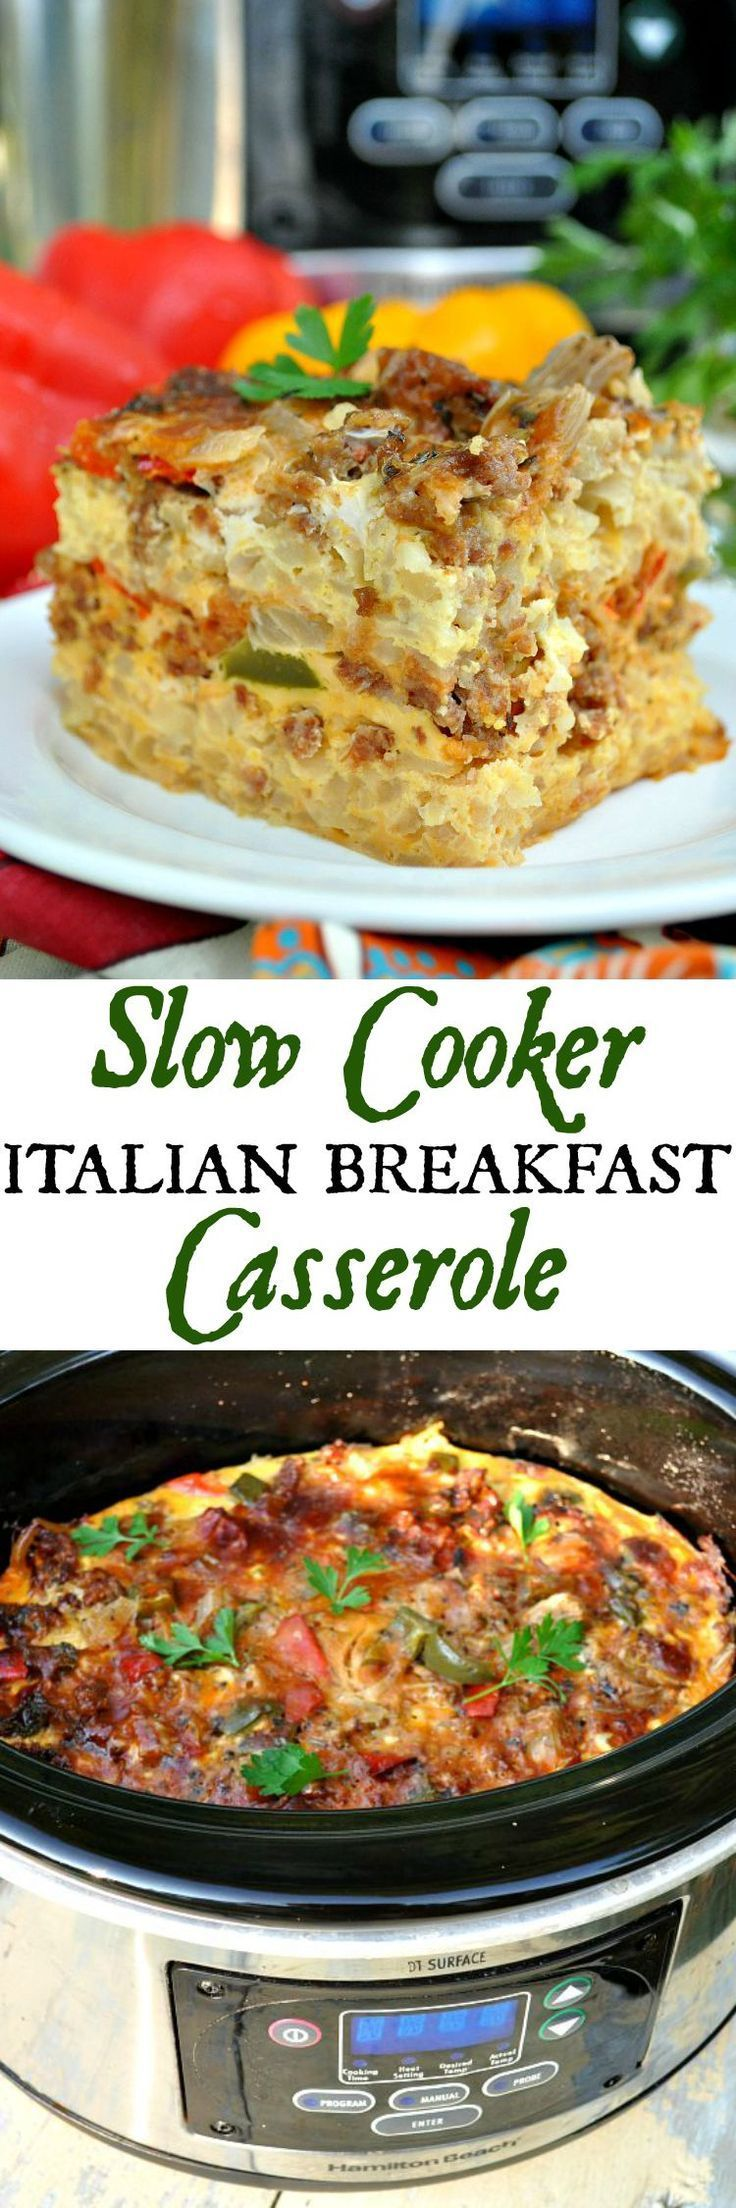 Cooker Italian Breakfast Casserole With layers of hash brown potatoes, eggs, cheese, Italian sausage, herbs, and veggies, this Slow Cooker Italian Breakfast Casserole is a total game changer! It cooks in your Crock Pot overnight so that you can wake up to a satisfying and easy breakfast in the morning!With layers of hash brown potatoes, egg...